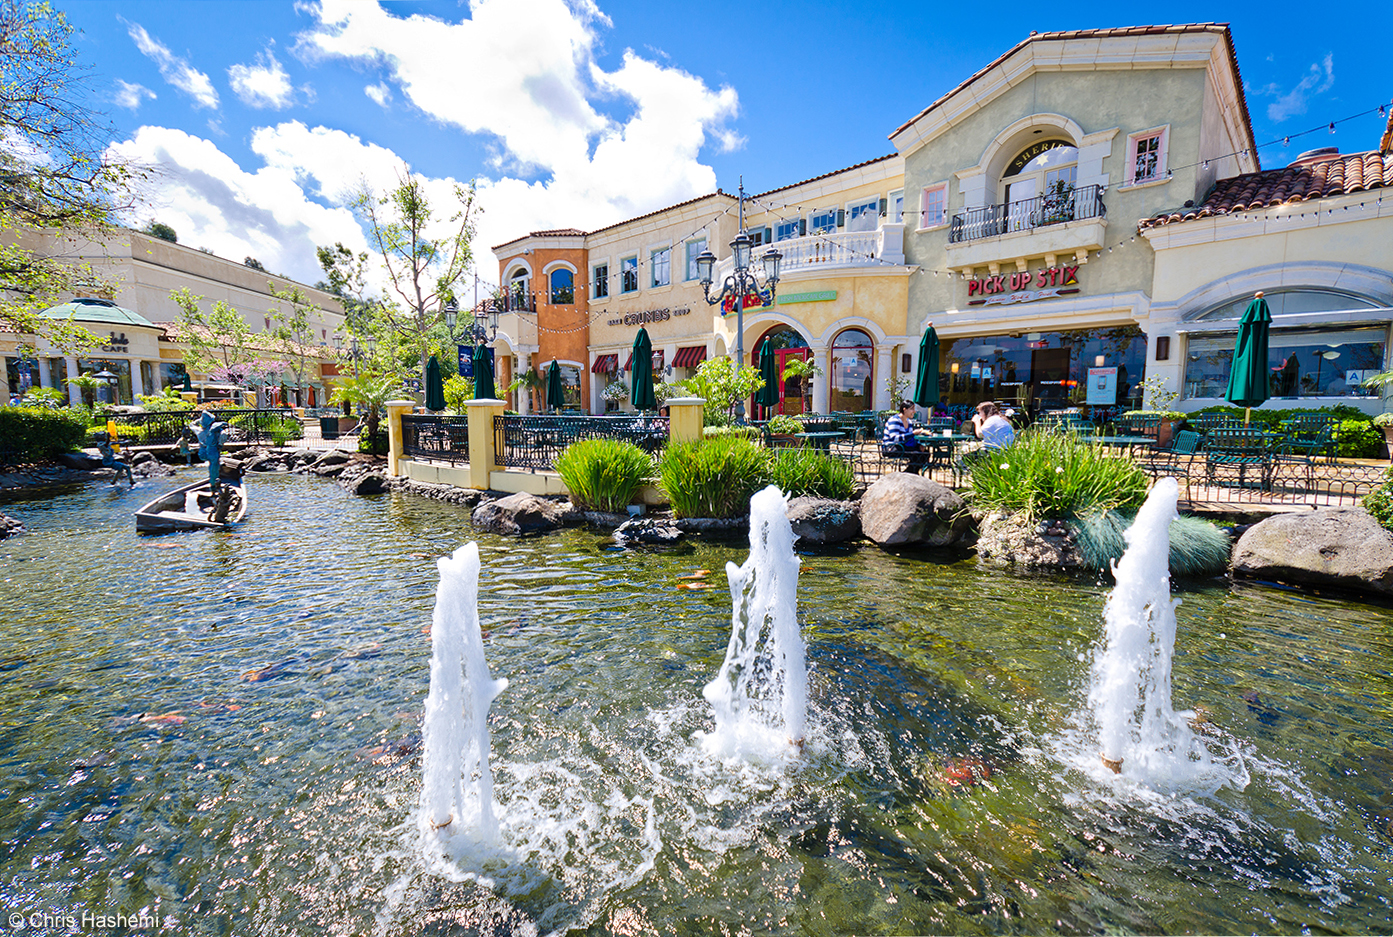 The_fountains_at_The_Commons_at_Calabasas